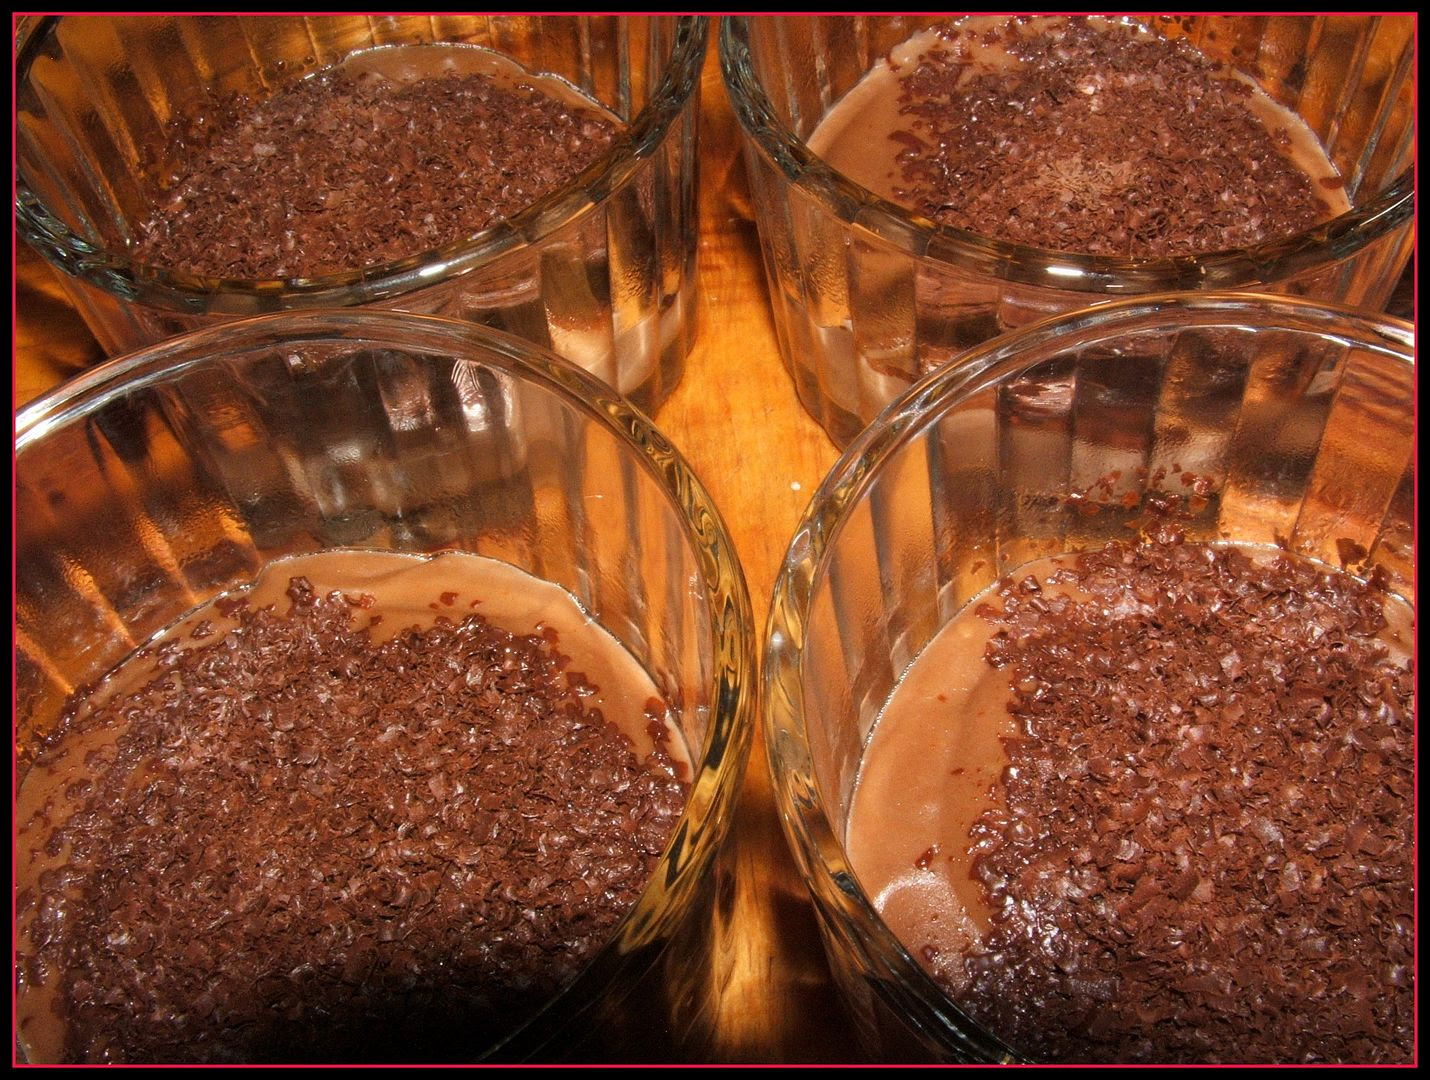 Chili Pepper Chocolate Creme Brulee by Angie Ouellette-Tower photo 002_zpsa971d73a.jpg